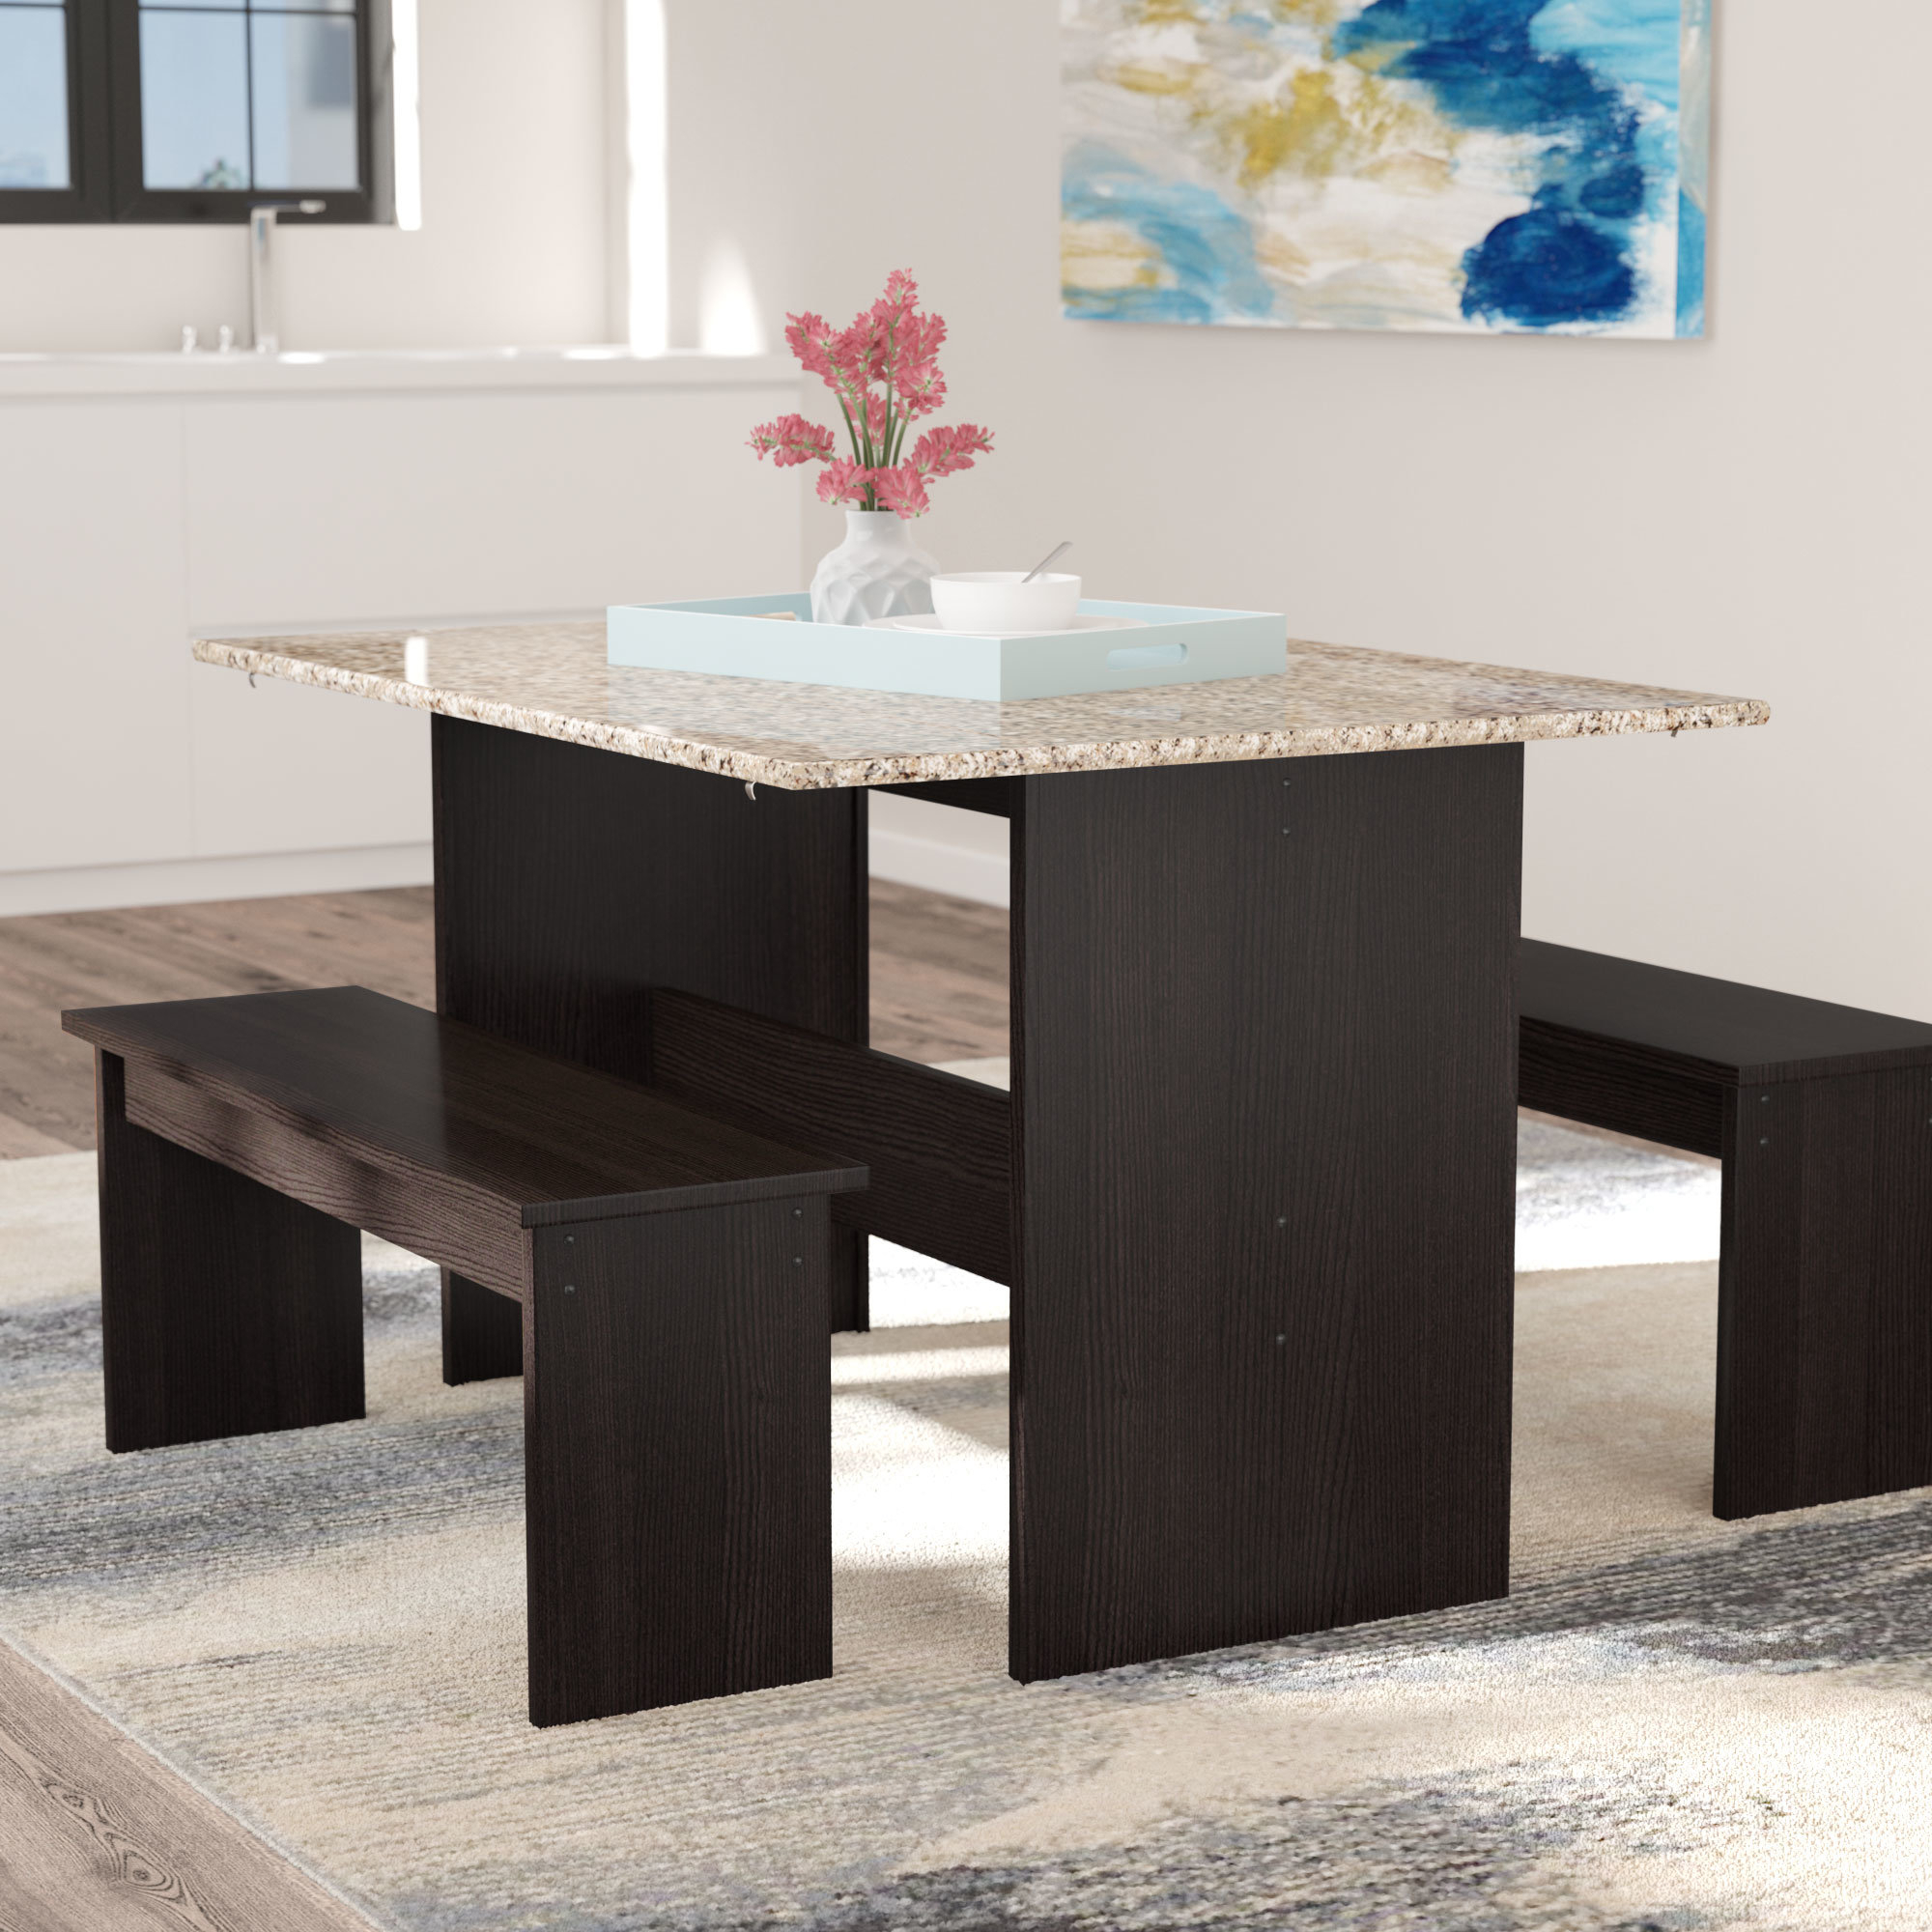 Ryker 3 Piece Dining Sets Inside Newest Ryker 3 Piece Dining Set (Gallery 1 of 20)